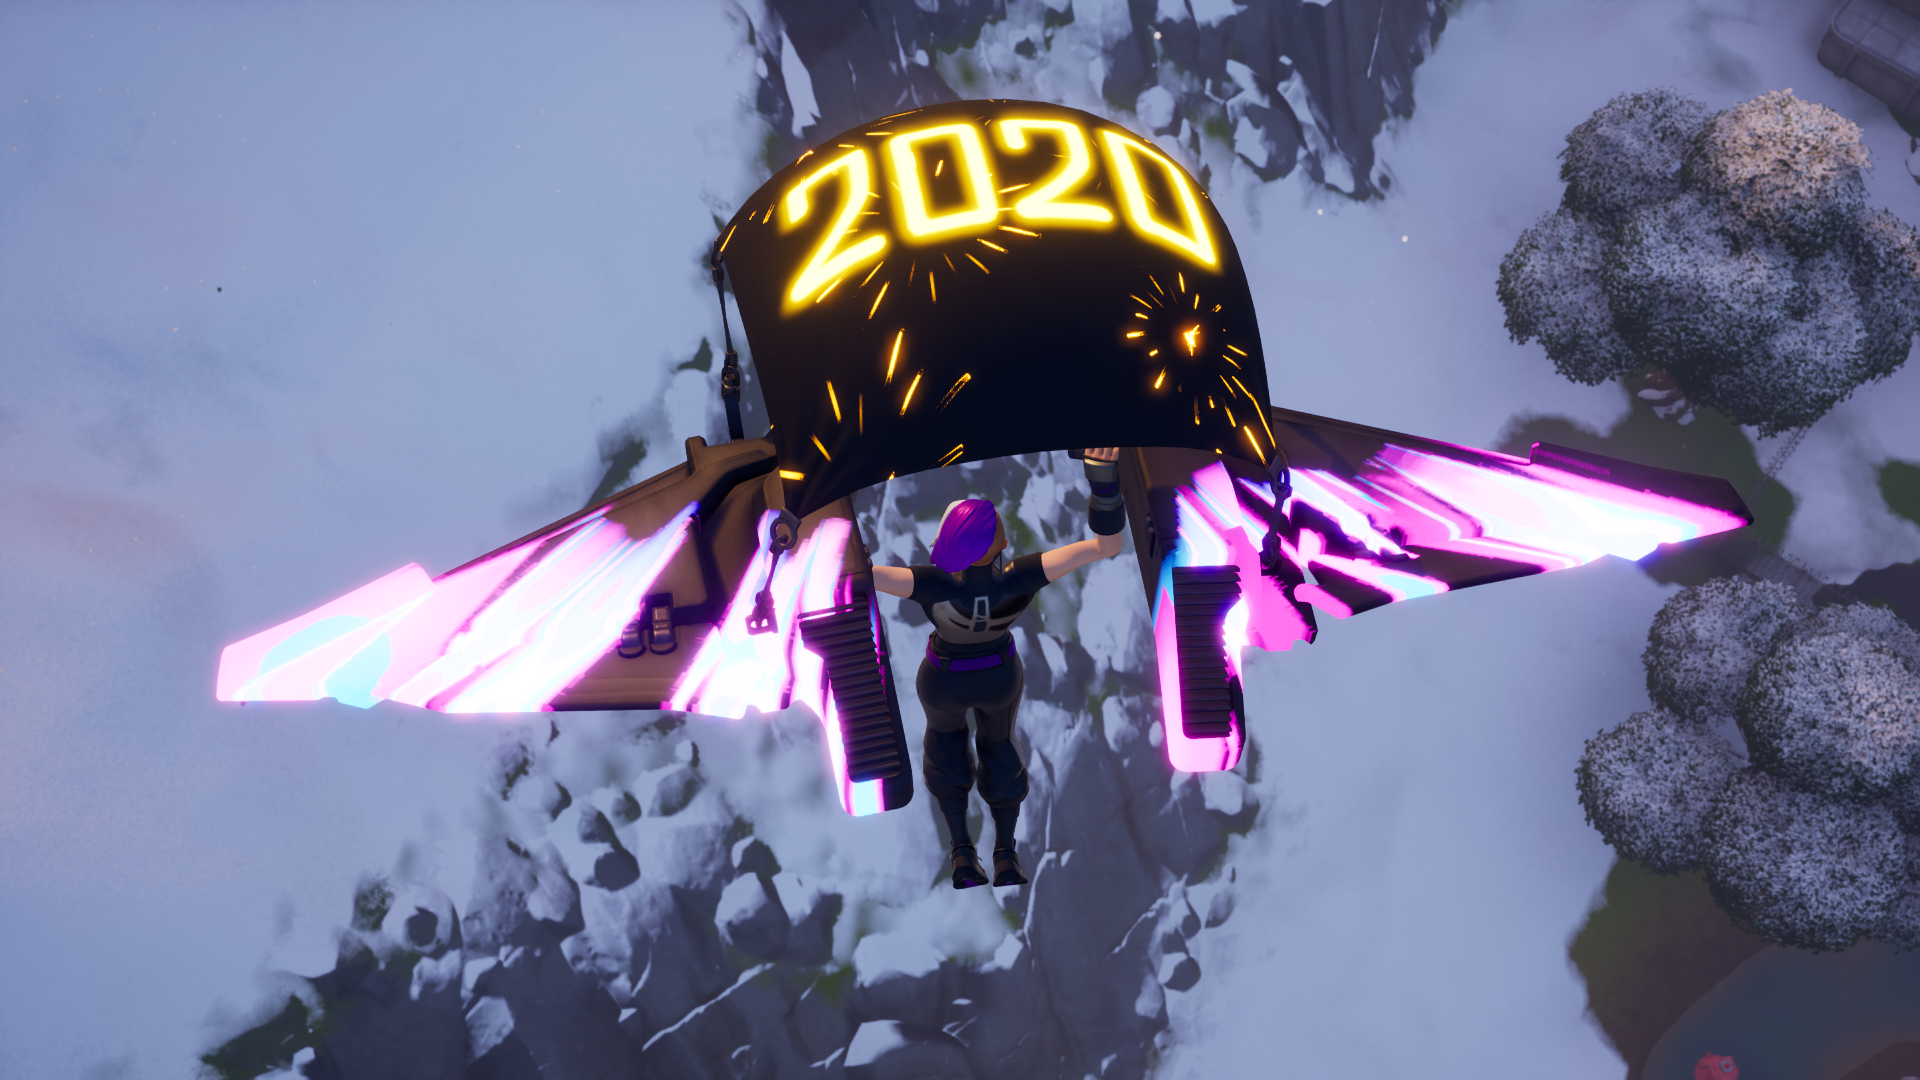 a Fortnite player flies into a game with Fortnite's 2020 New Years glider